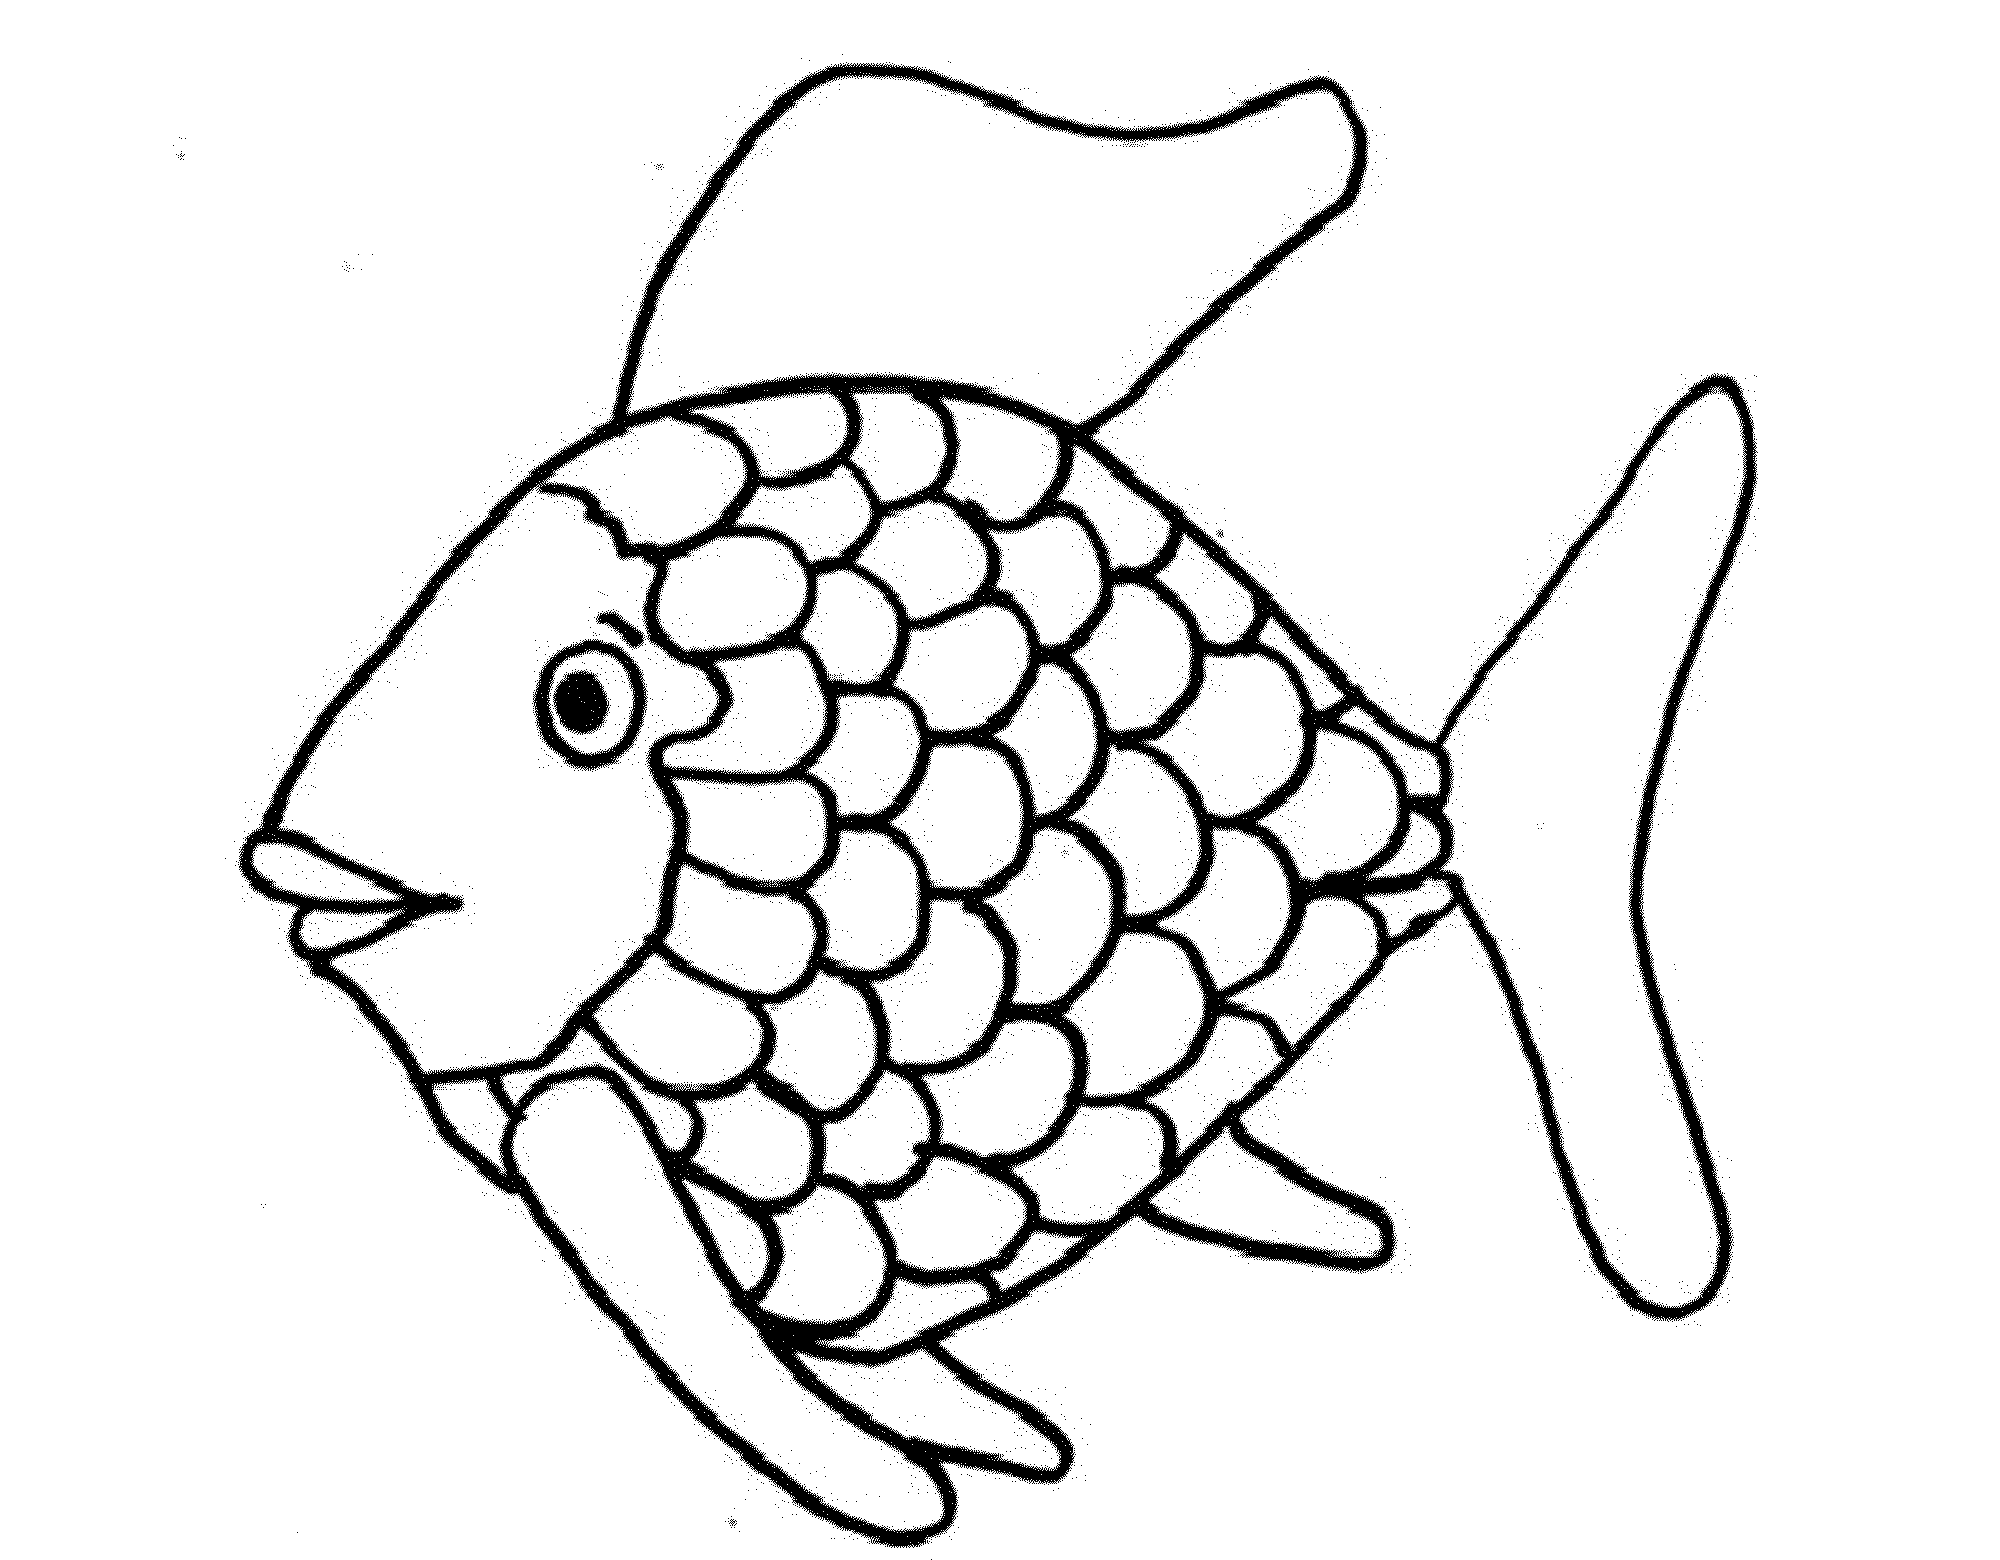 fish to coloring pages - photo#24